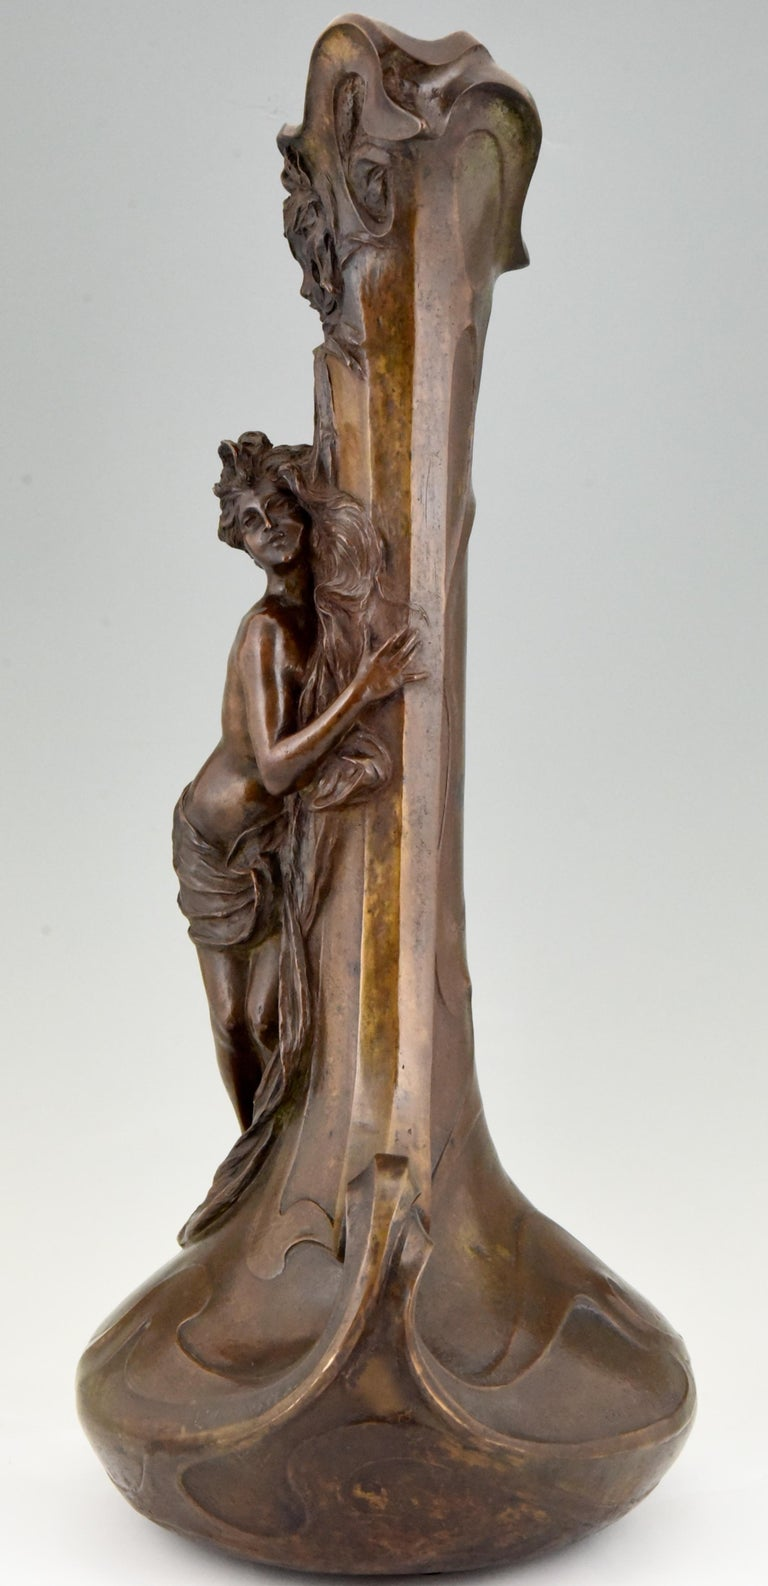 Patinated Tall Art Nouveau Bronze Vase Lady at a Fountain Lucas Madrassi, France, 1900 For Sale